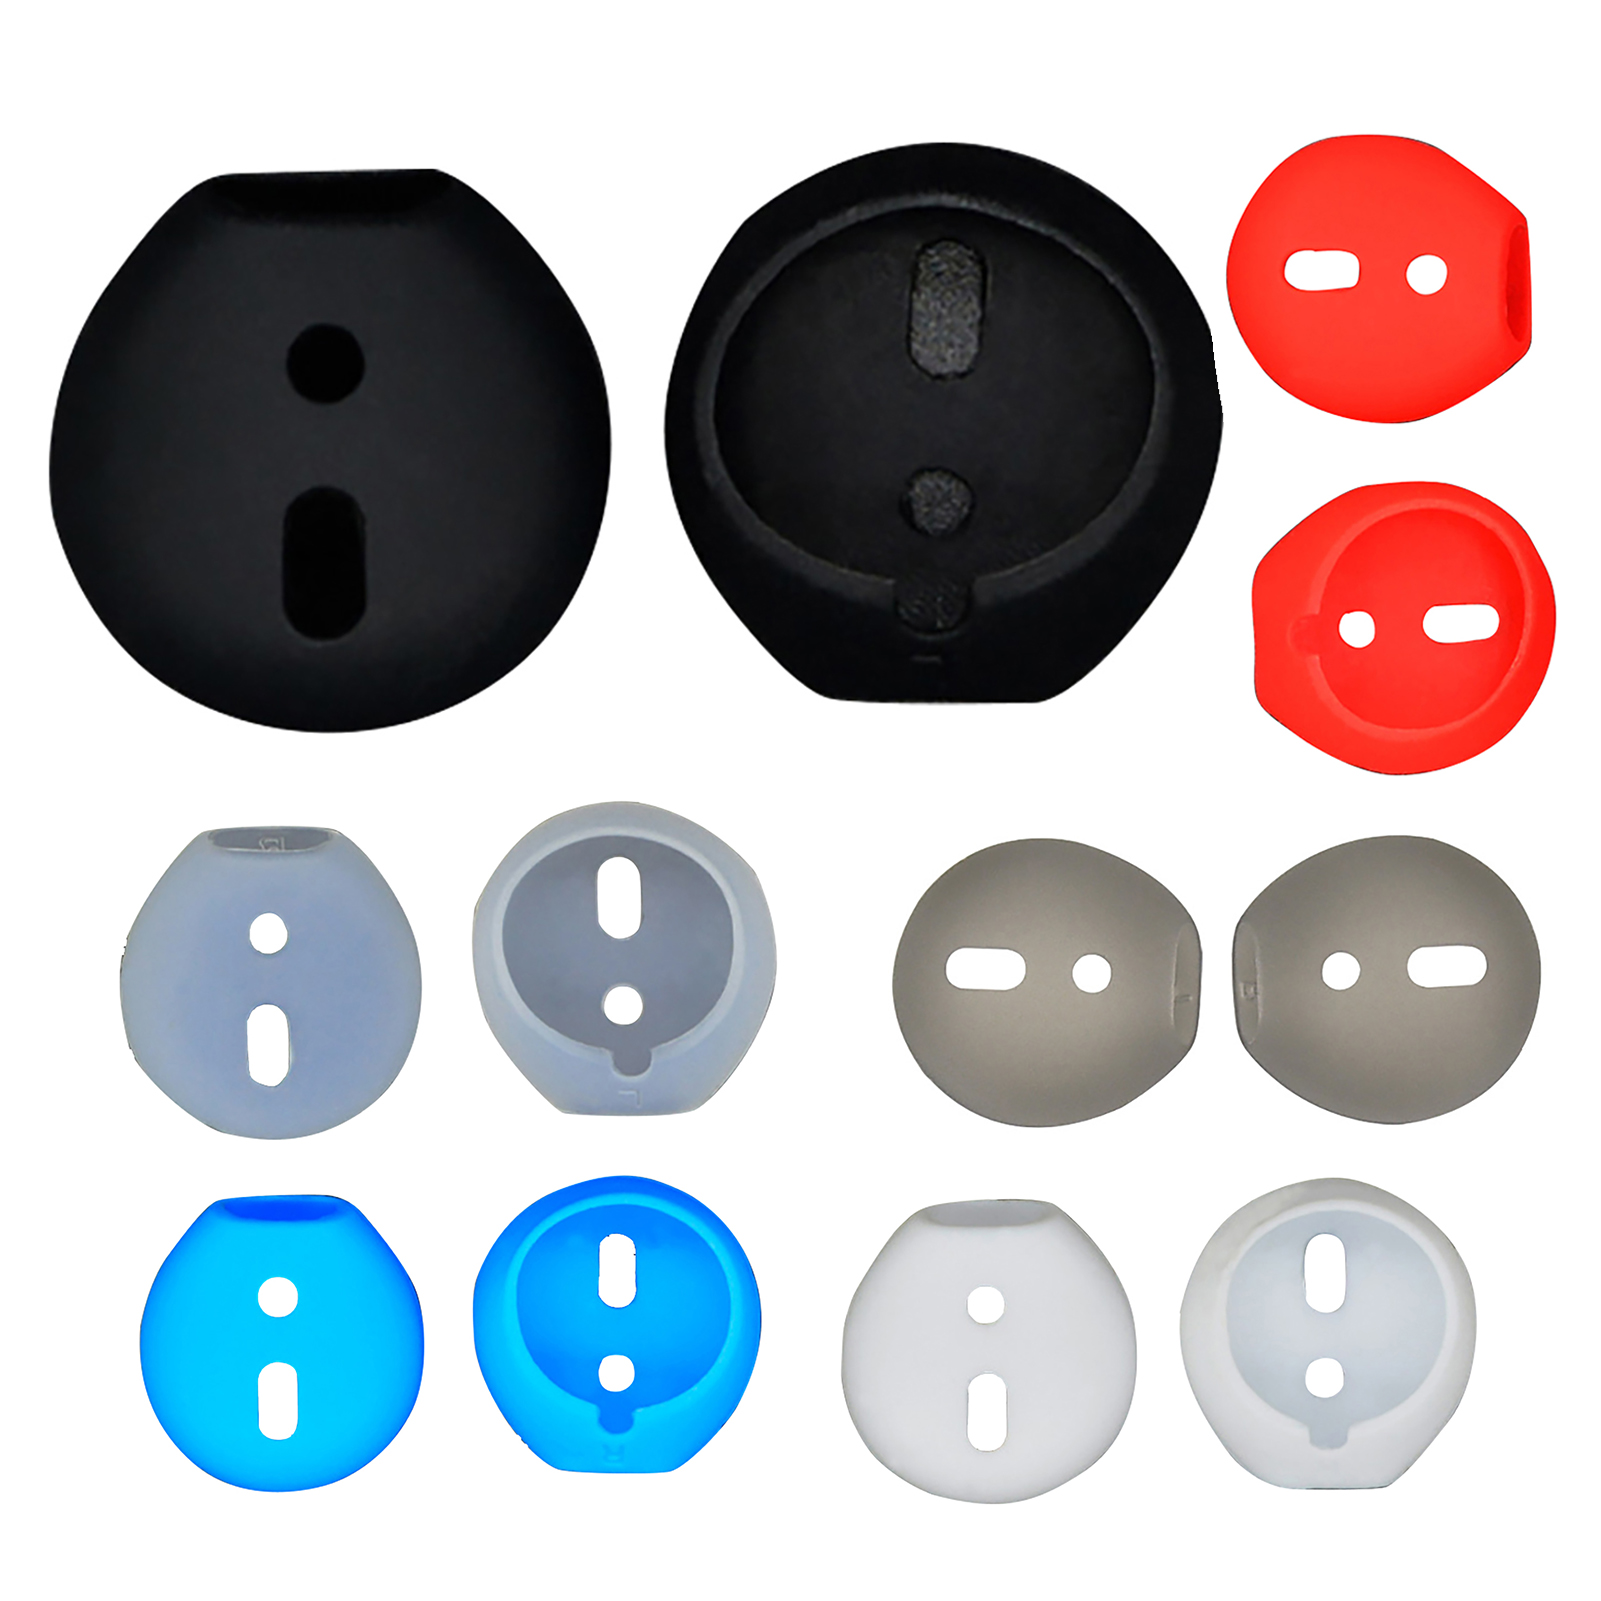 1-3-5-Pairs-Replacement-Silicone-Eartips-Anti-Lost-Earbud-Cover-For-Apple-Airpod thumbnail 17